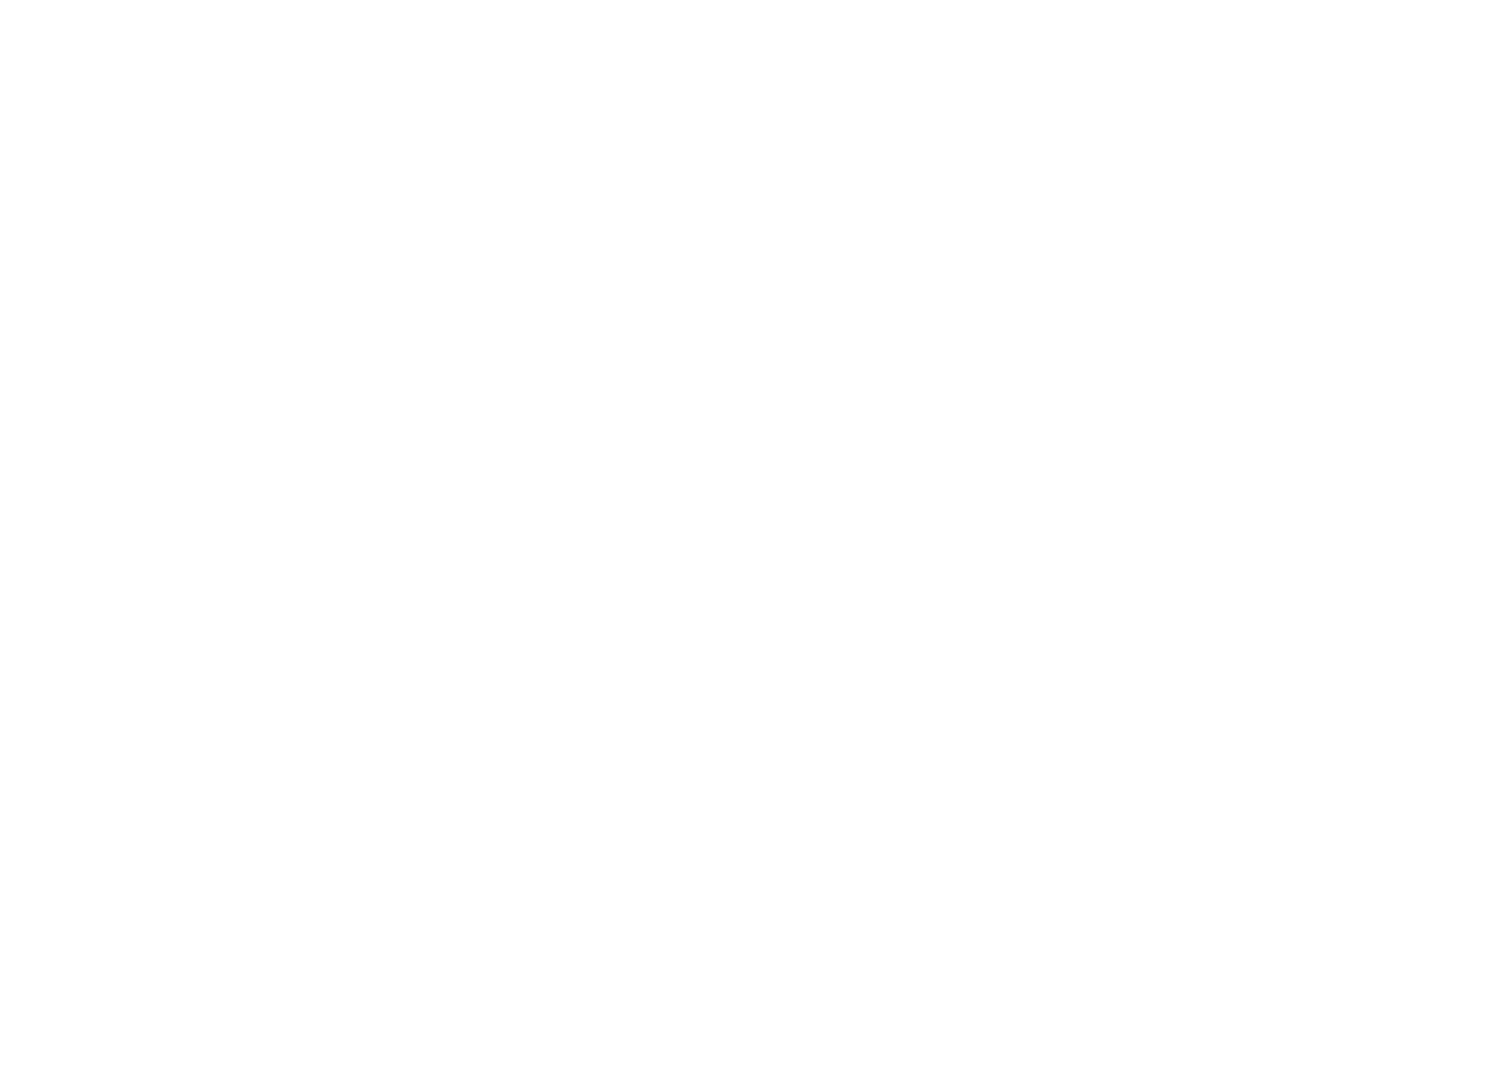 North Marsh Guide Co